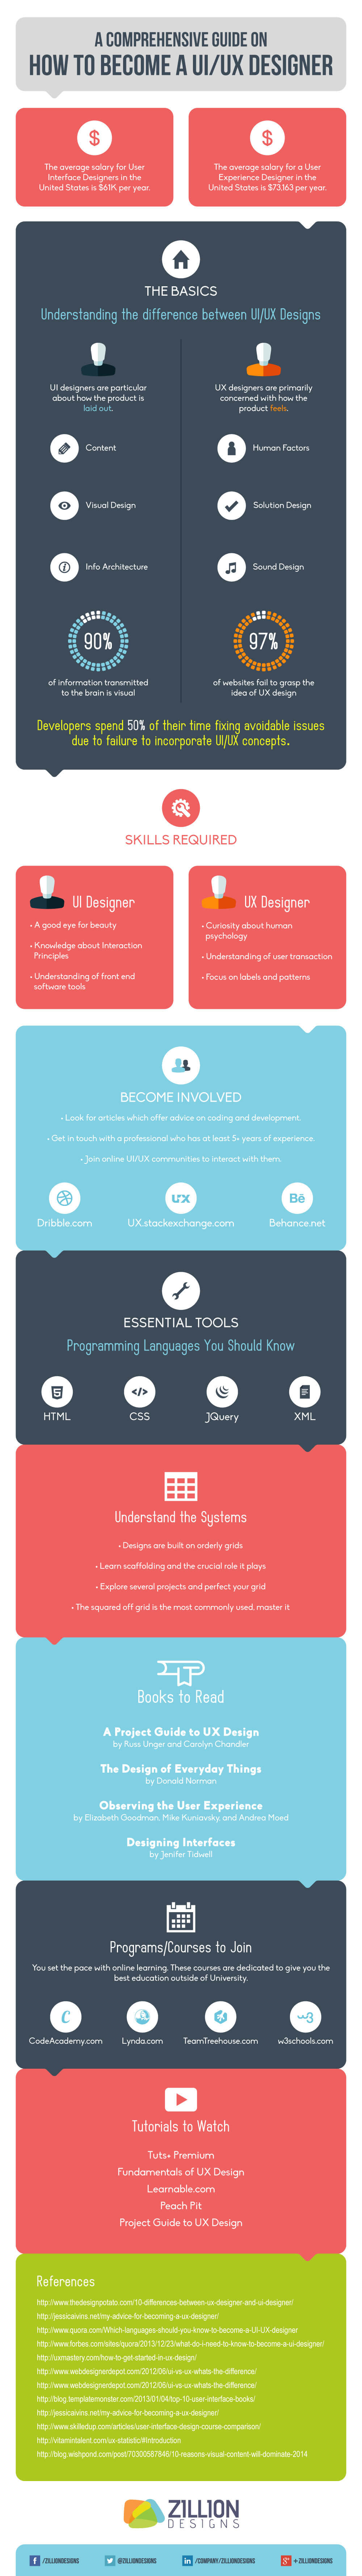 Infographic: A comprehensive guide on how to become a UI designer or a UX designer